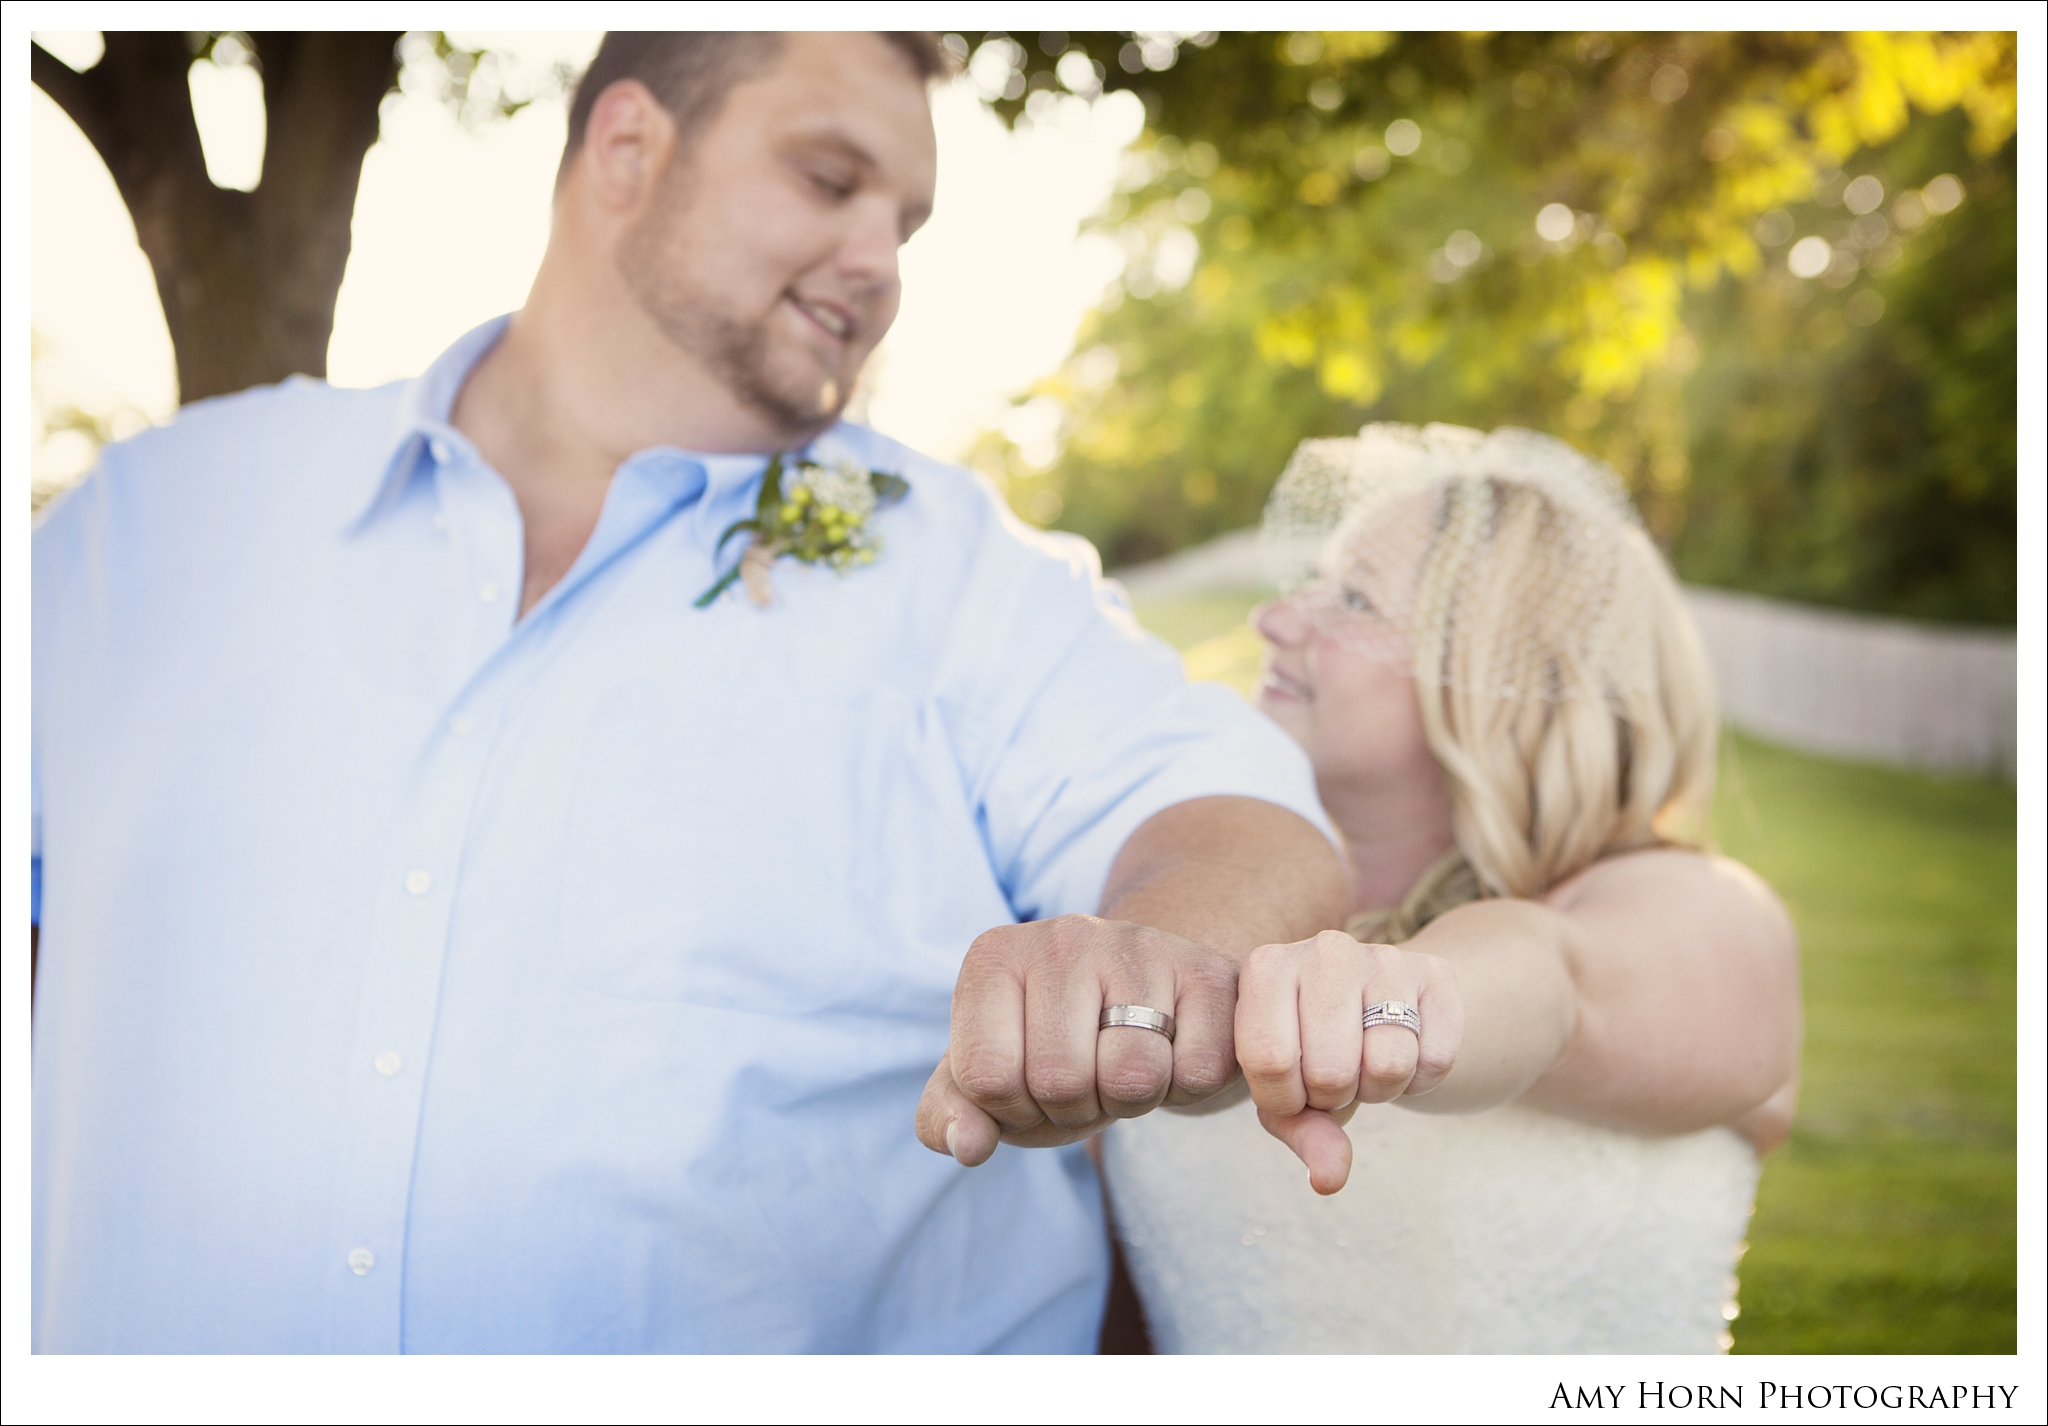 cincinnati ohio wedding photographer, lawrenceburg indiana wedding, amy horn, engagement photography, field photography, country wedding session, wedding and engagement session ideas, engagement session, wedding, madison indiana wedding photographer02.jpg